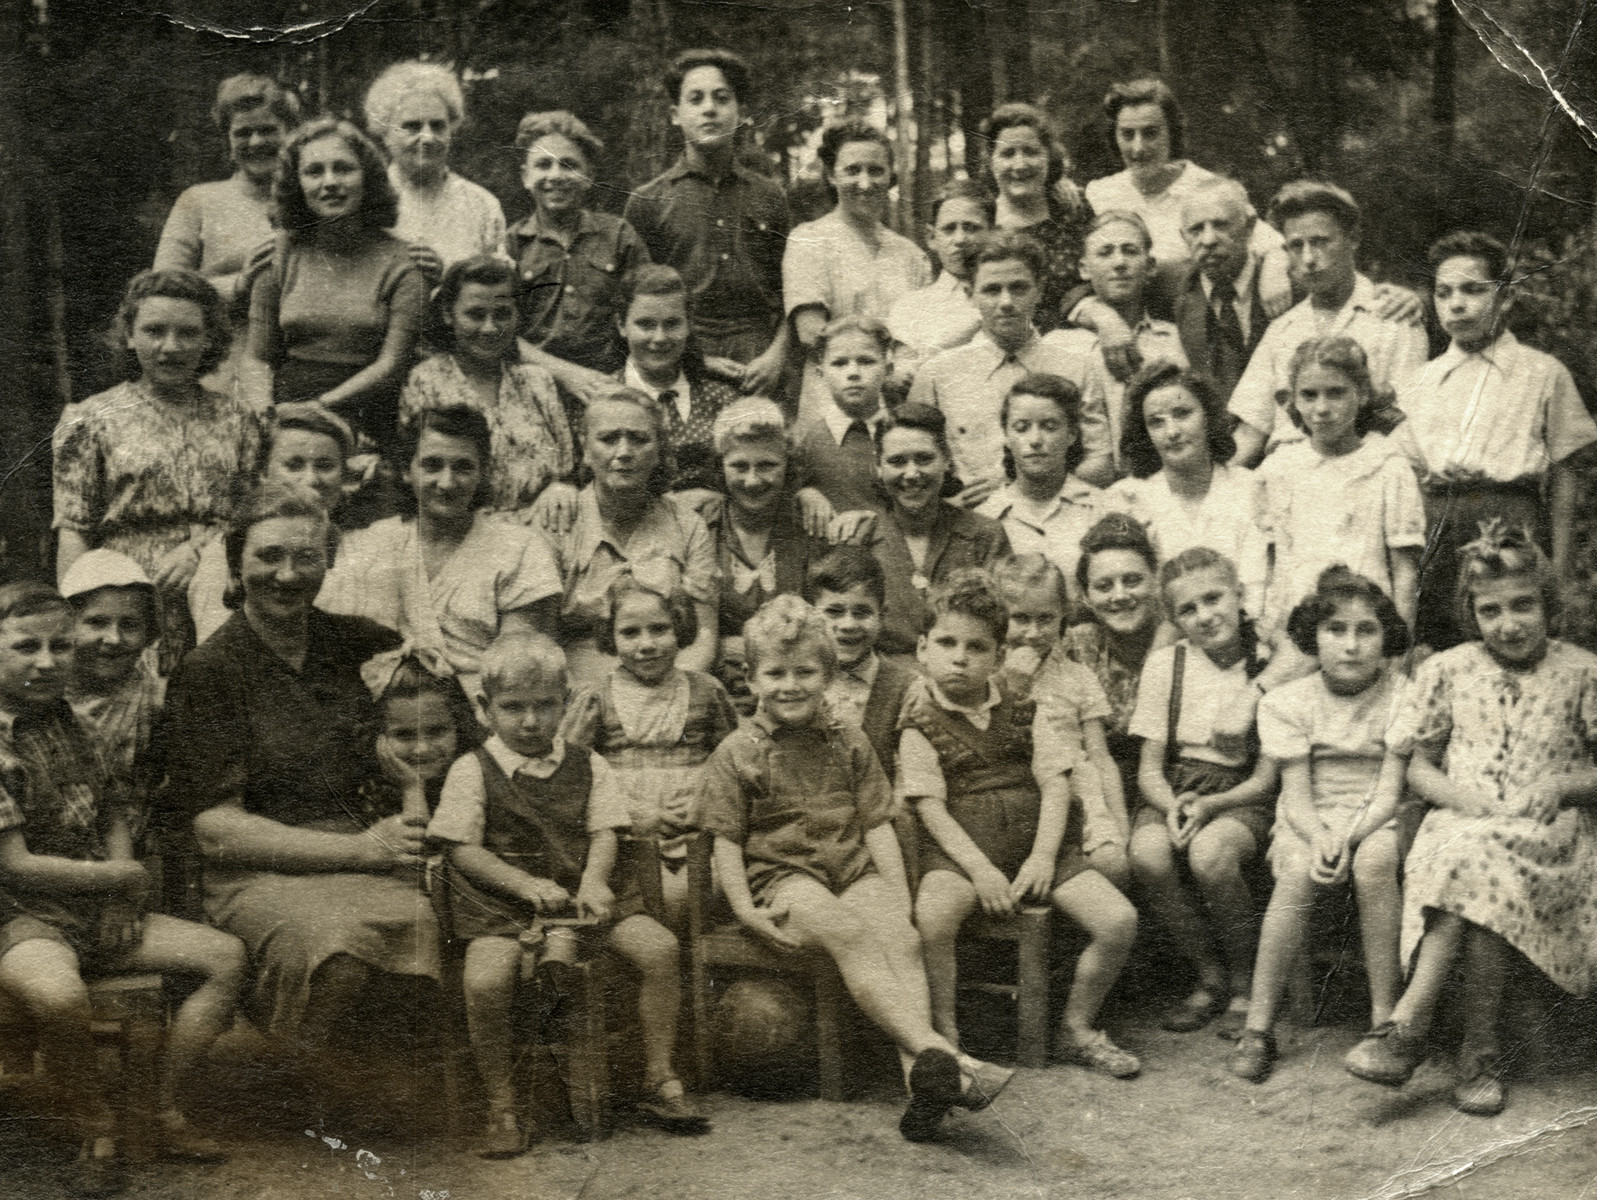 Group portrait of Jewish orphans and employees at the Lodz orphanage, a youth aliyah home.   Pictured in the second row, fourth from the right, wearing a dark jacket is orphanage councellor Rachel Greenfeld.